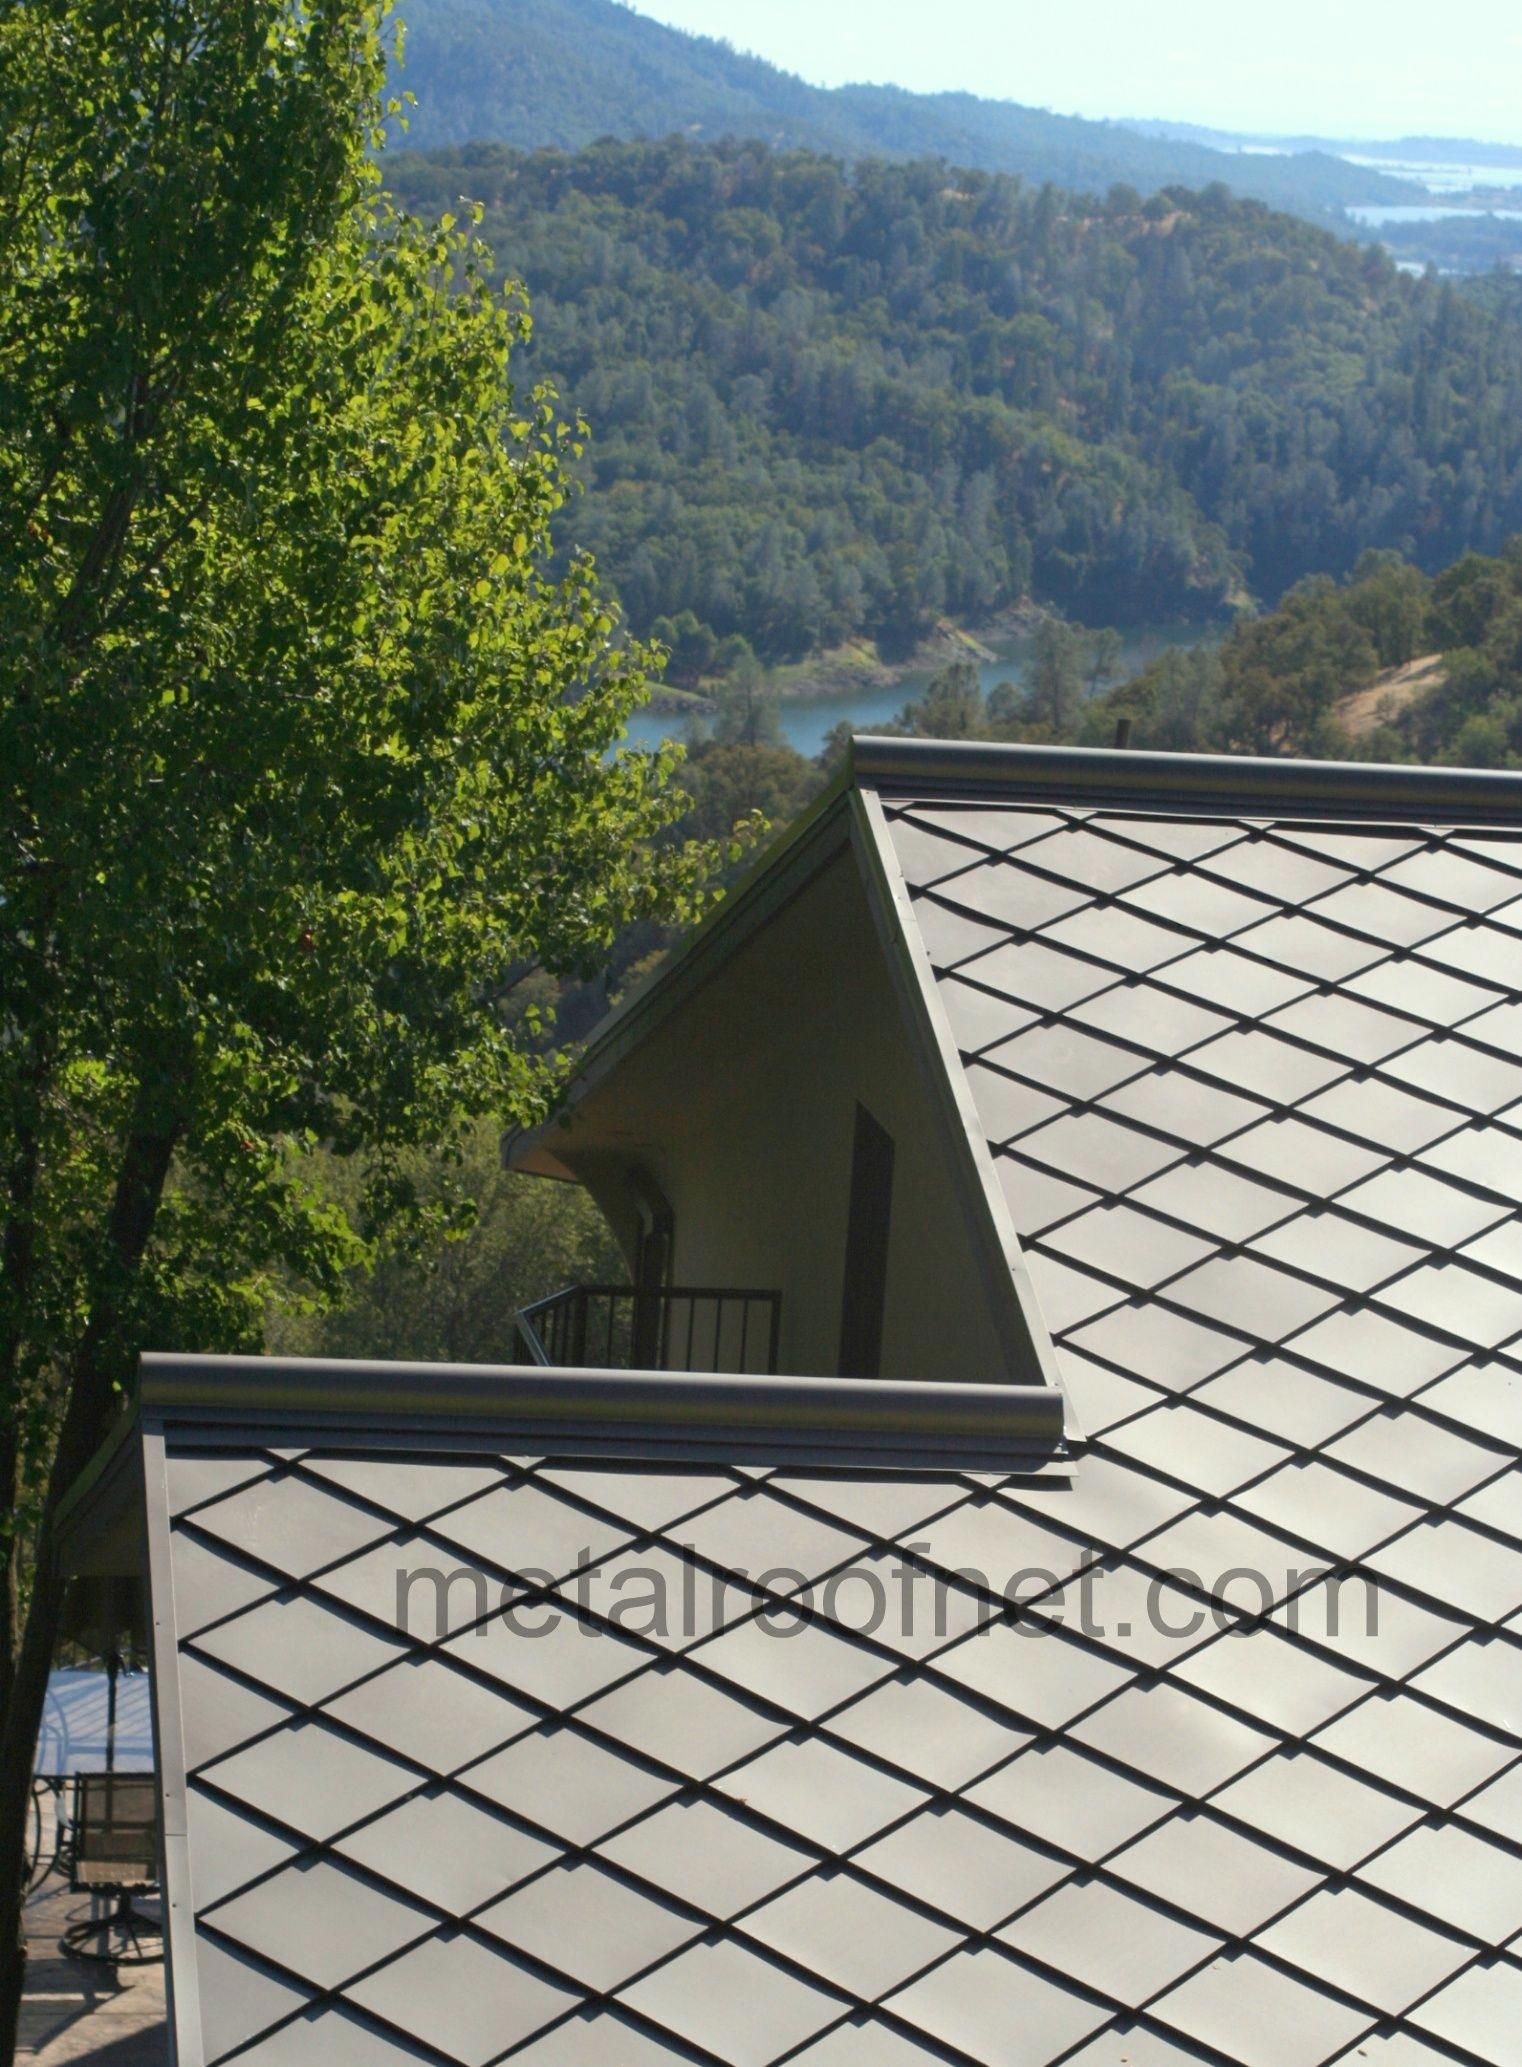 Diamond Roof Shingles Are Distinct And Unusual Get Your Diamonds In Steel Copper Zinc Or Aluminum With Customized Roof Shingles Solar Panels Solar Shingles